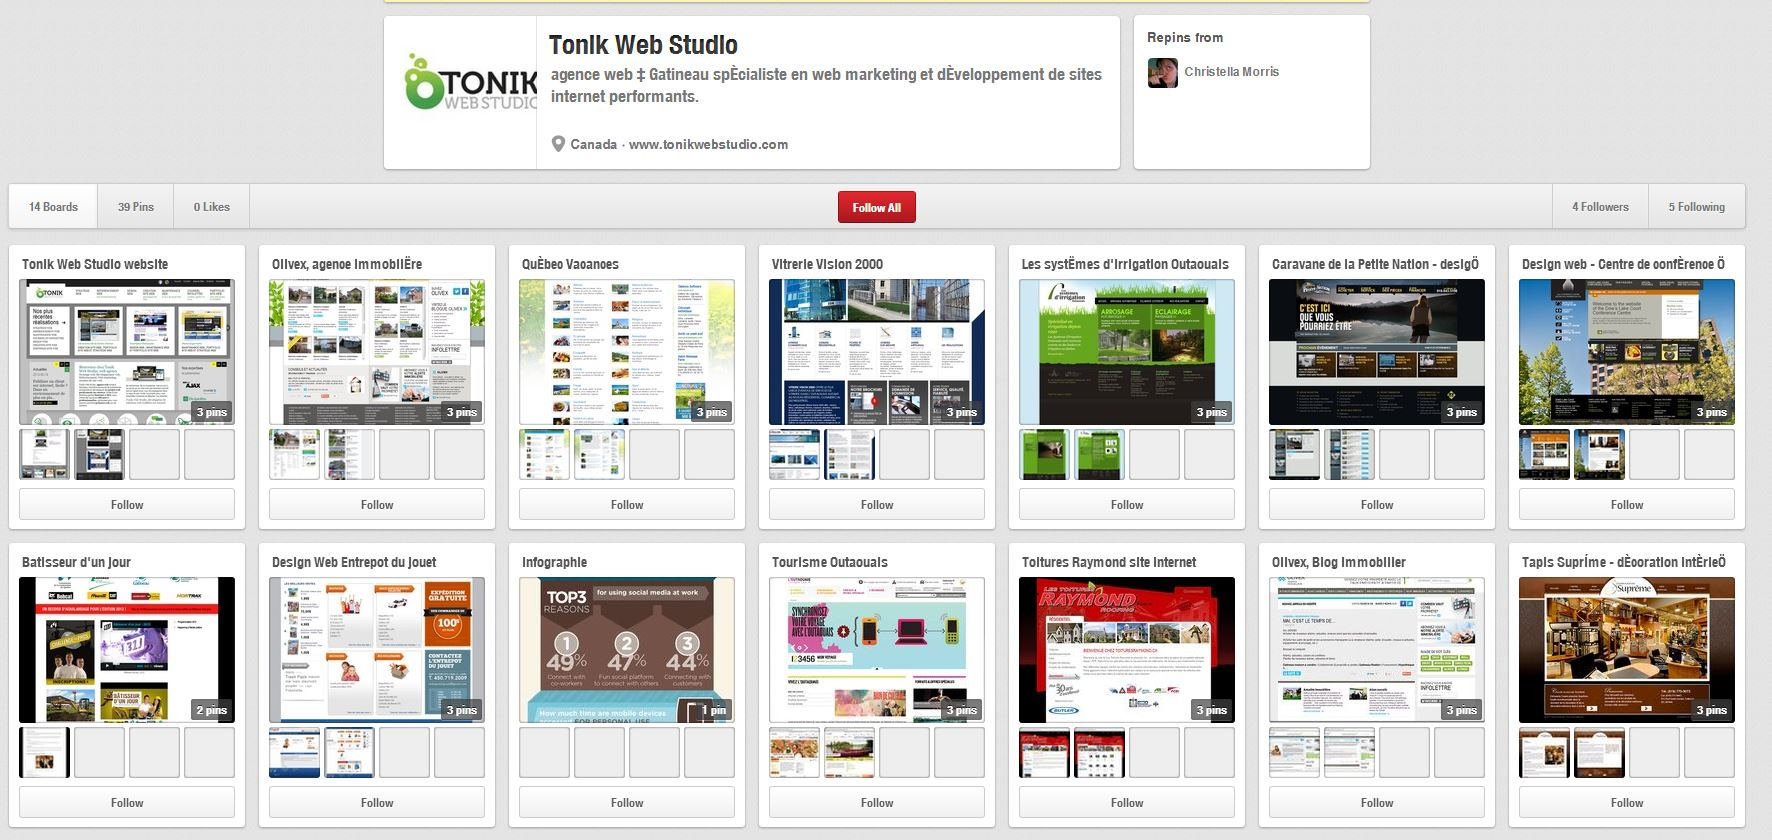 Tonik web studio sur Pinterest